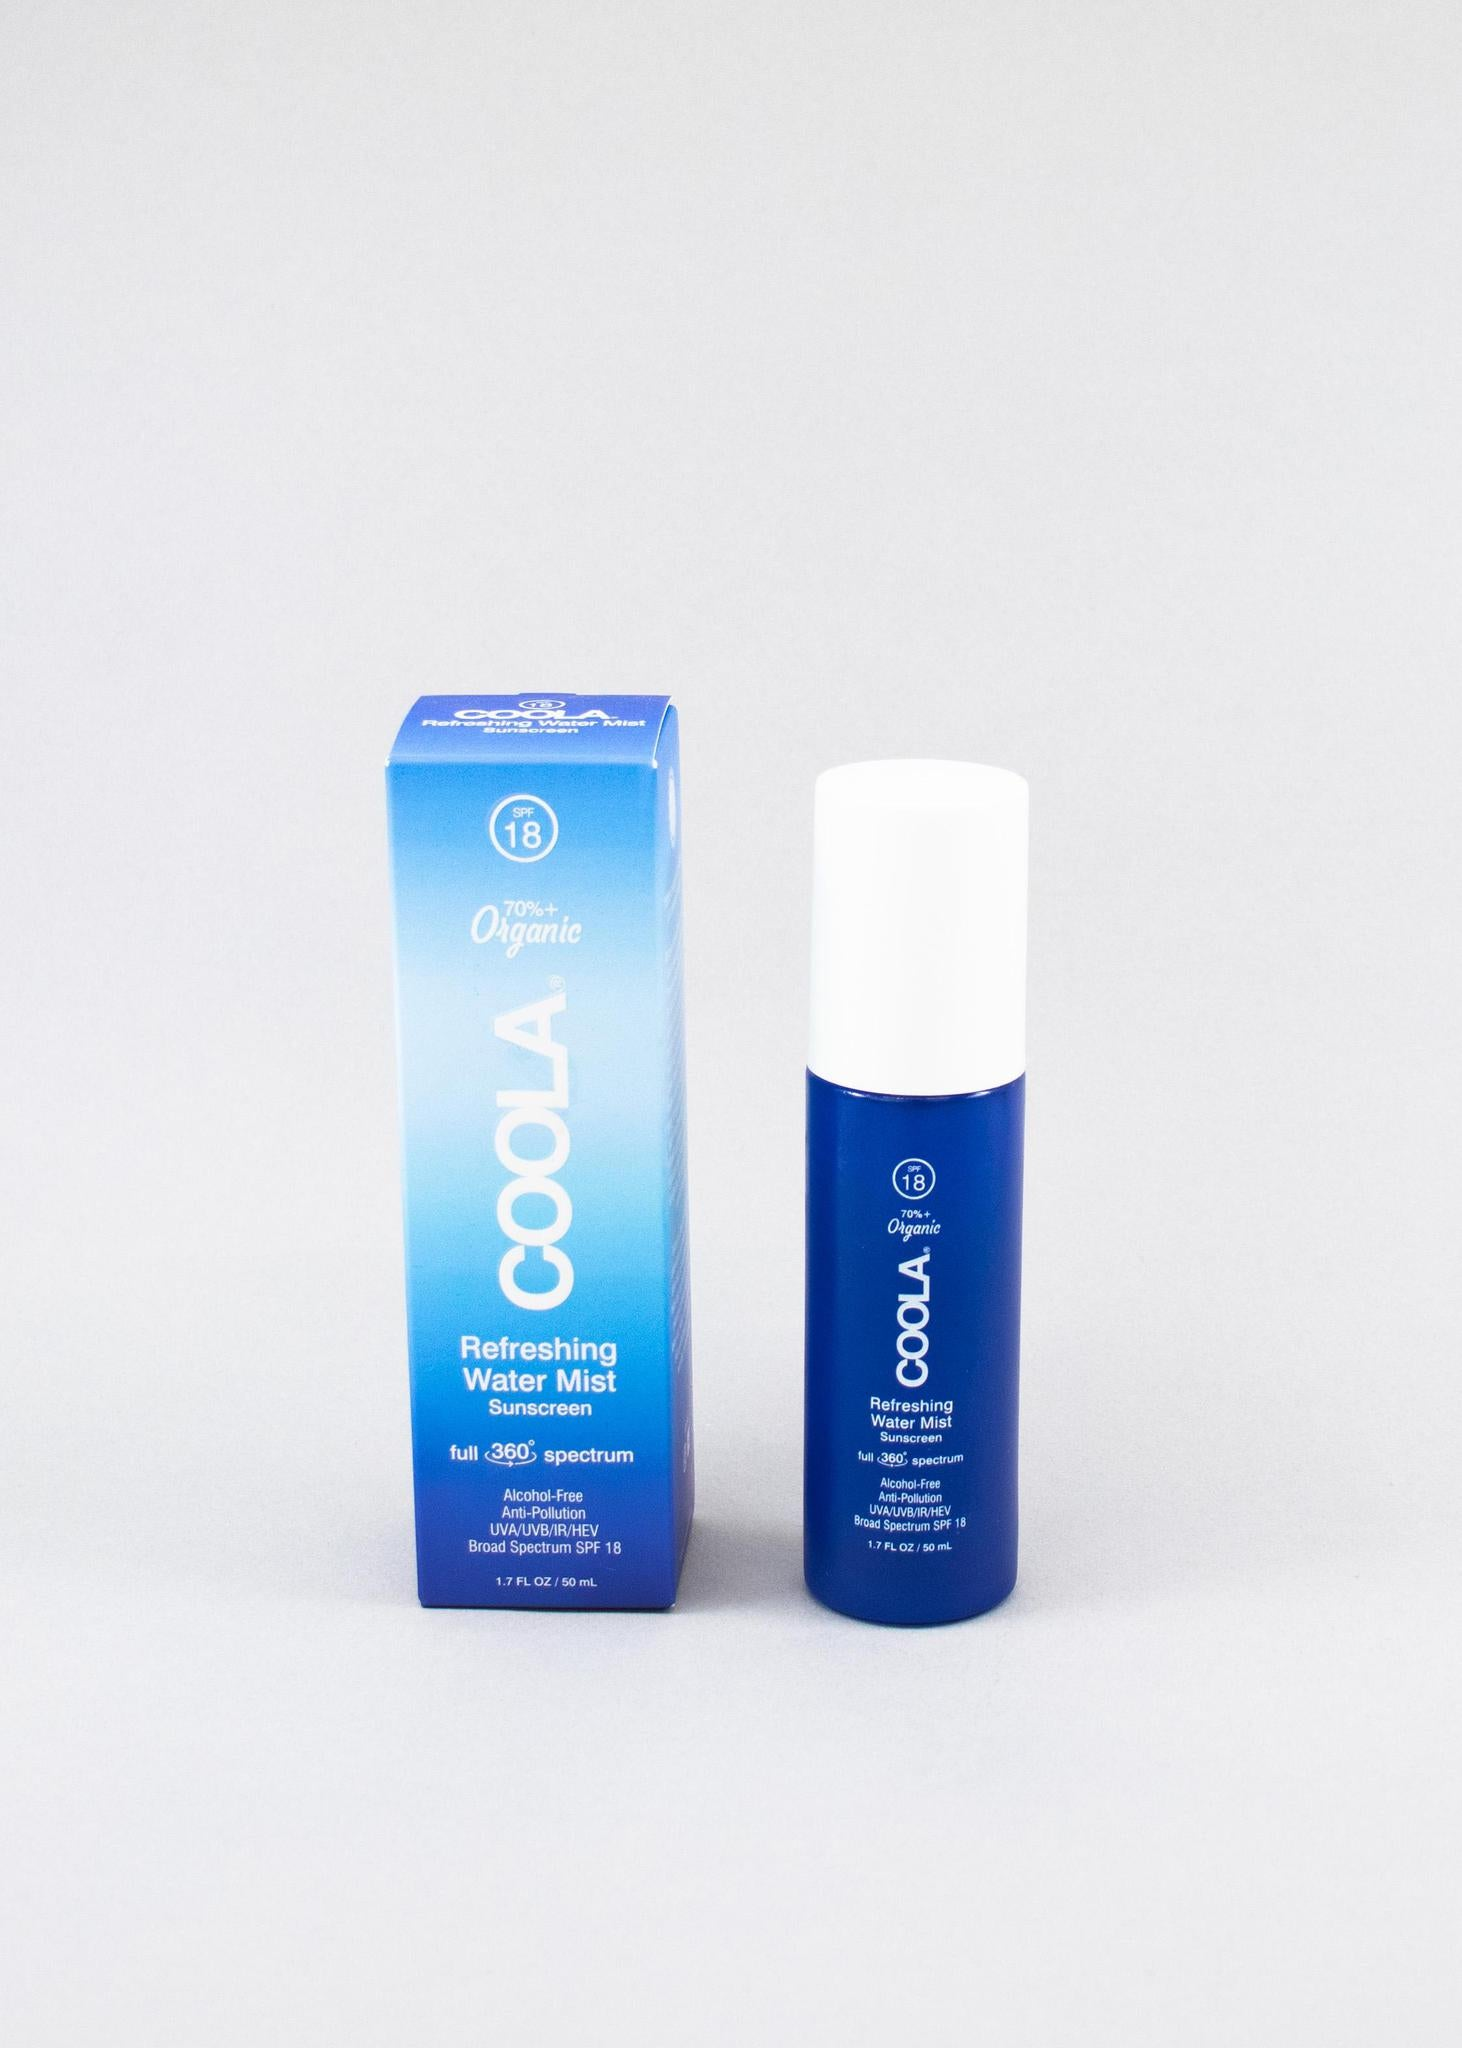 COOLA - Full Spectrum 360 Refreshing Water Mist SPF 18